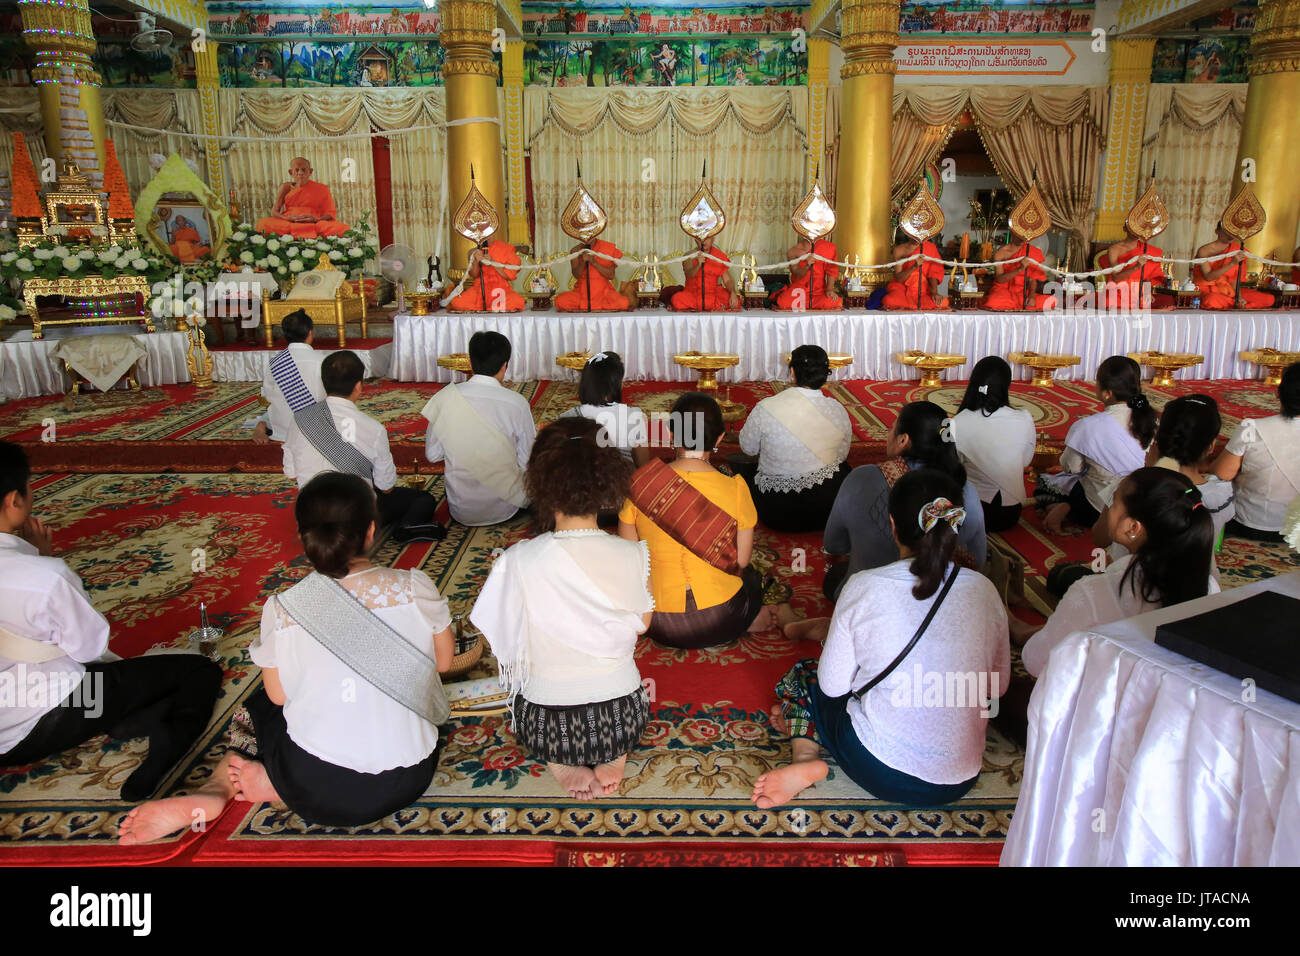 Buddhist monks praying at Remembrance of the Deceased, Wat Ong Teu Mahawihan (Temple of the Heavy Buddha), Vientiane, Laos - Stock Image